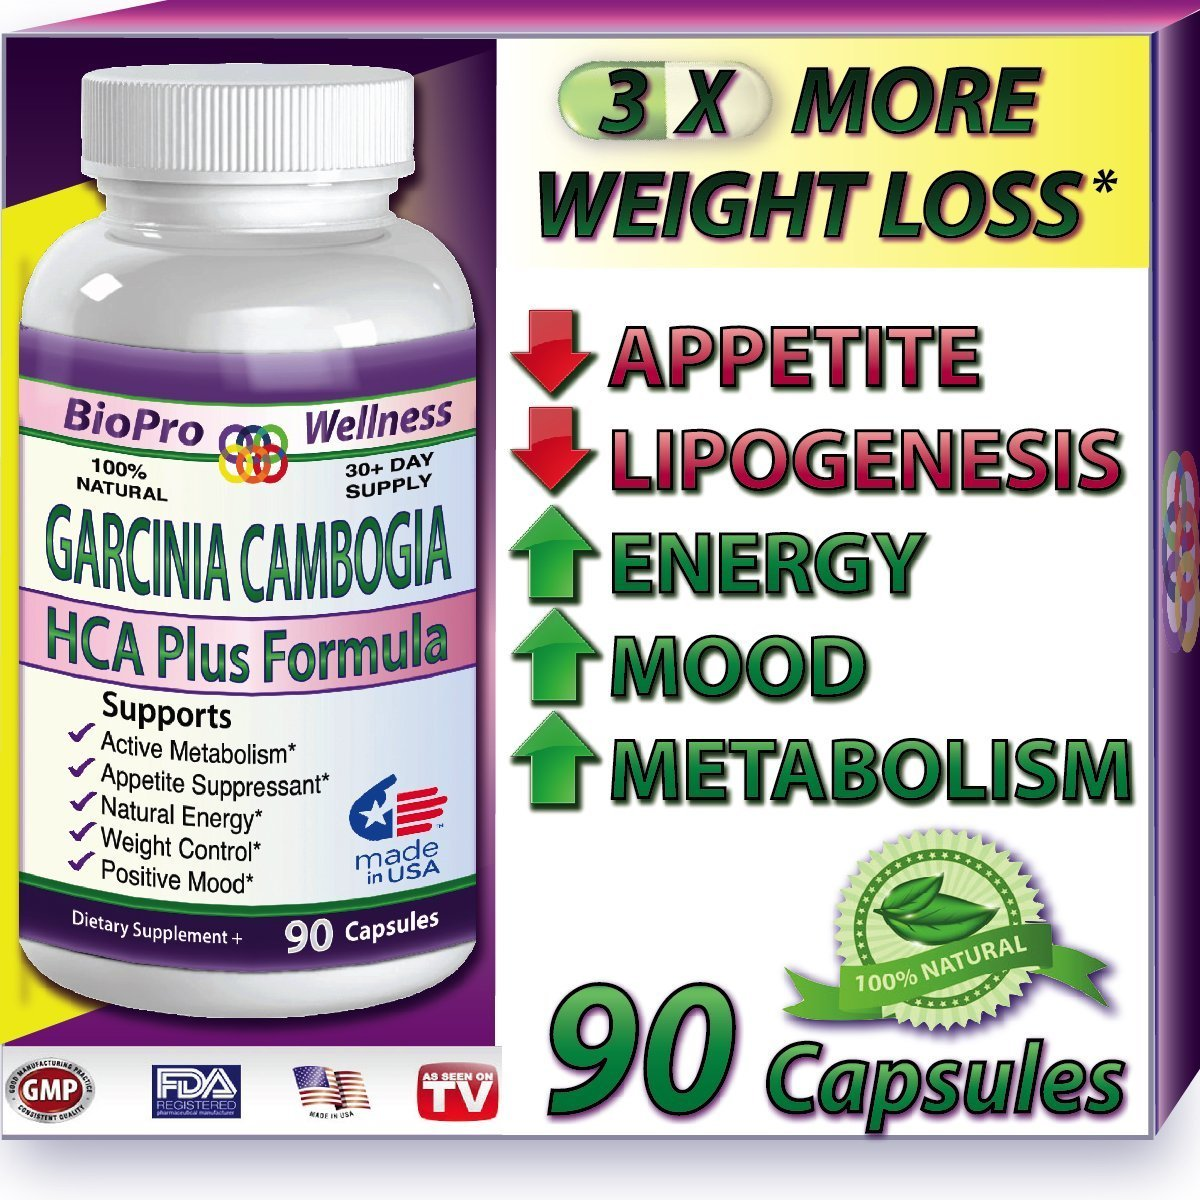 Best Fat Burner, Appetite Control, Metabolism Boost Weight Loss Management Formula, Pure Garcinia Cambogia Extract HCA, 3000mg That Work FAST for men women STRONG EXTREME Flat Belly Natural Diet Pill by BioProWellness